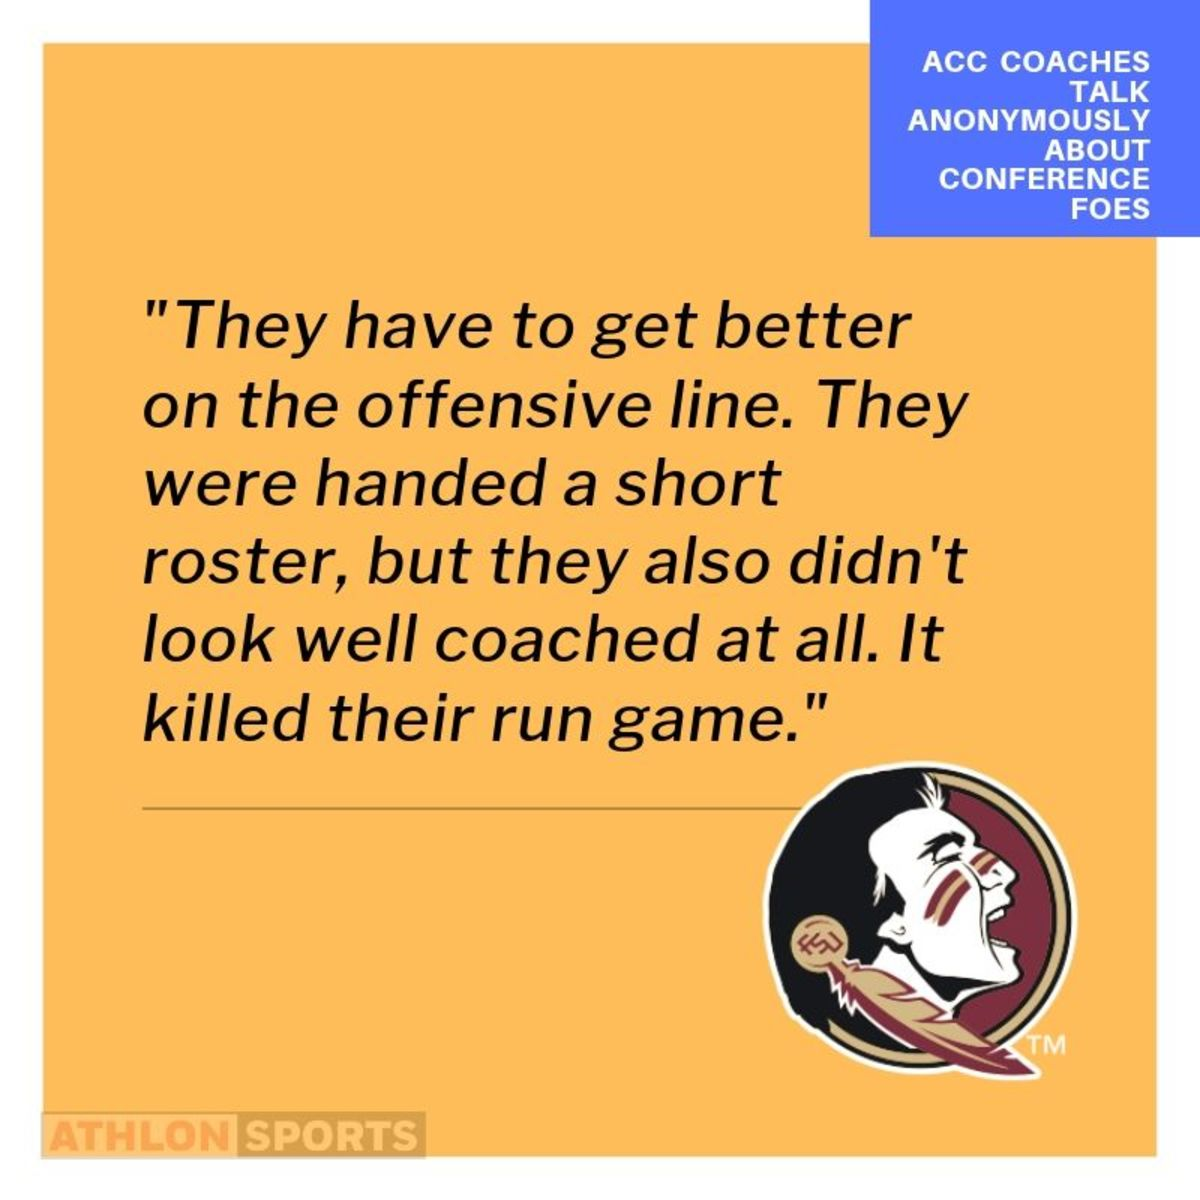 Anonymous Coach talk for the ACC and FSU